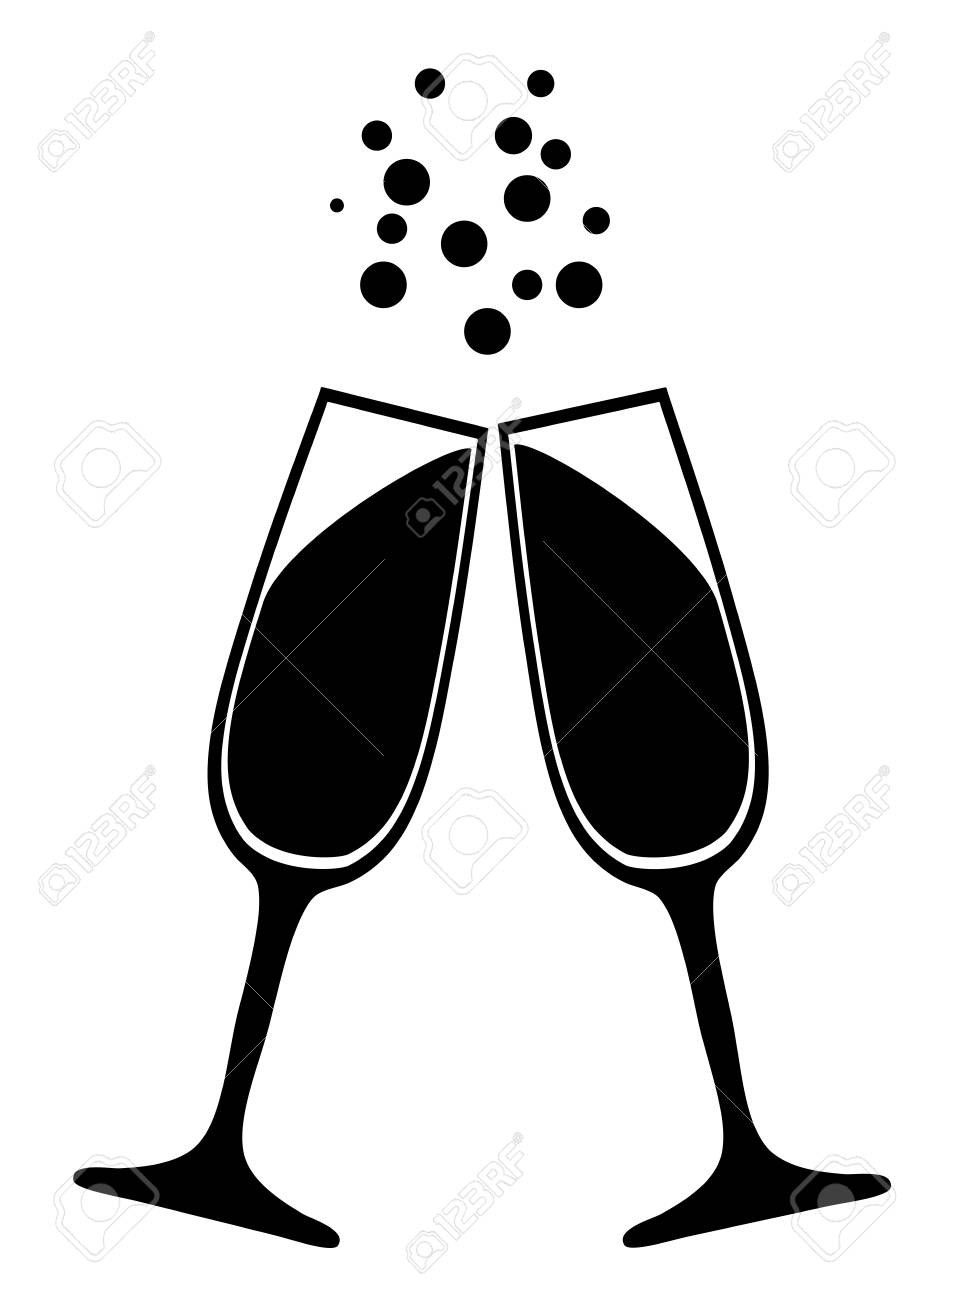 f774f874d6c Vector - vector illustration of champagne glasses silhouettes isolated on  white background